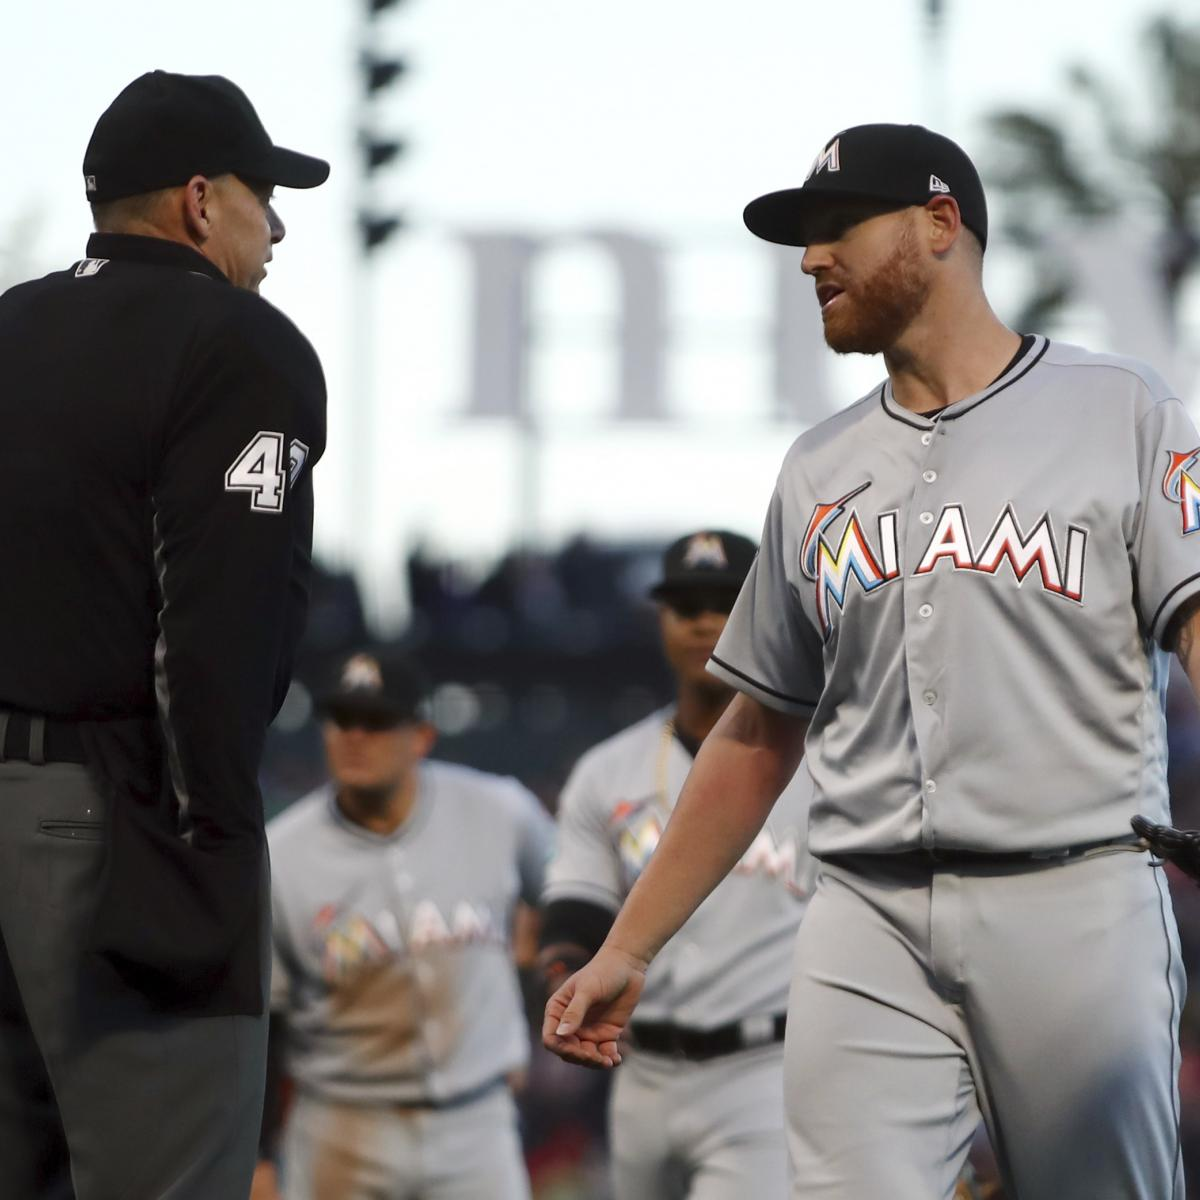 Dan Straily, Don Mattingly Reportedly Suspended After Buster Posey Thrown at